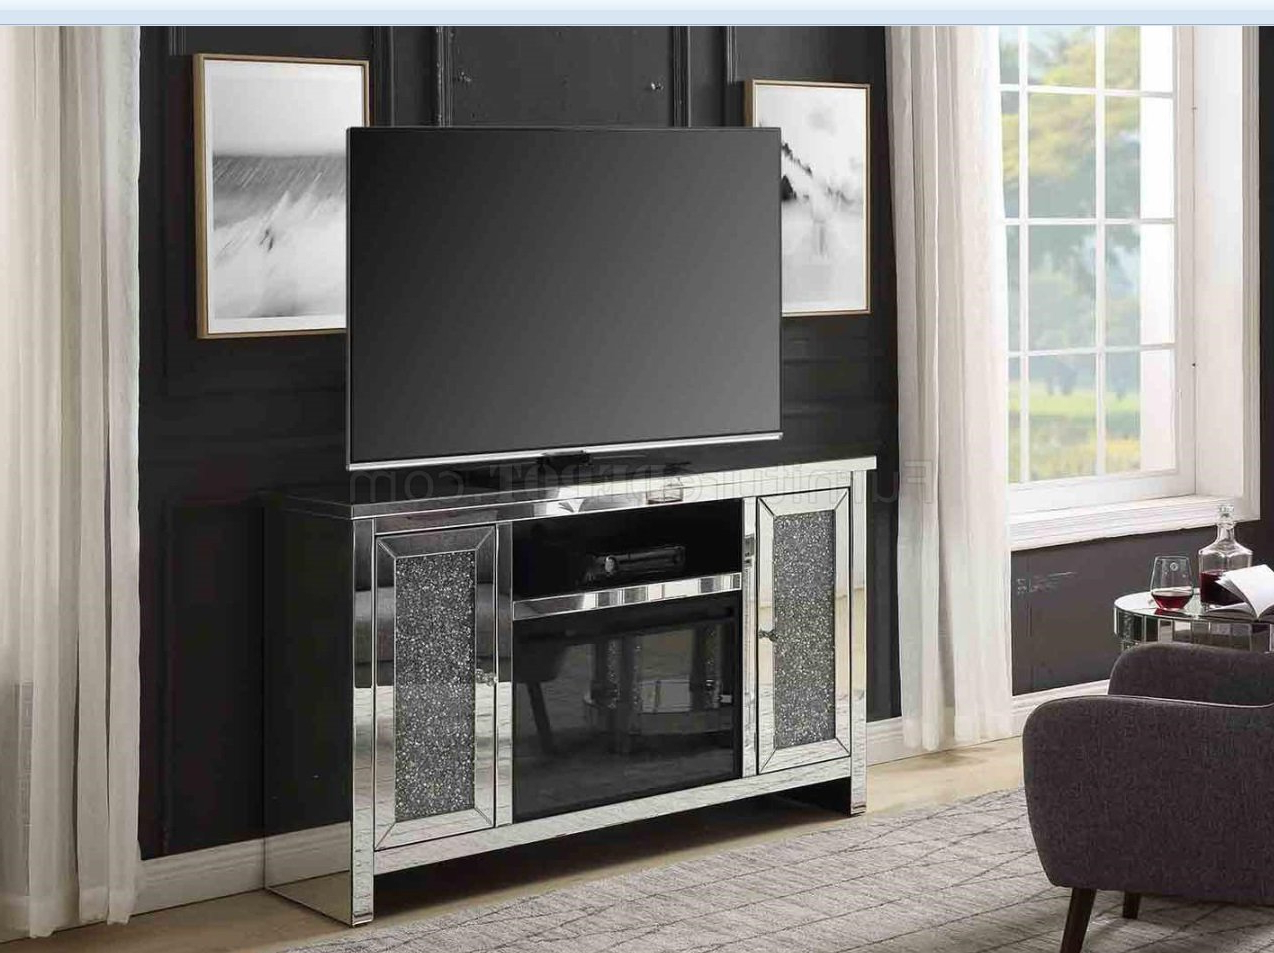 Well Known Noralie Tv Stand & Electric Fireplace 91775acme In Mirror Within Fitzgerald Mirrored Tv Stands (View 7 of 25)